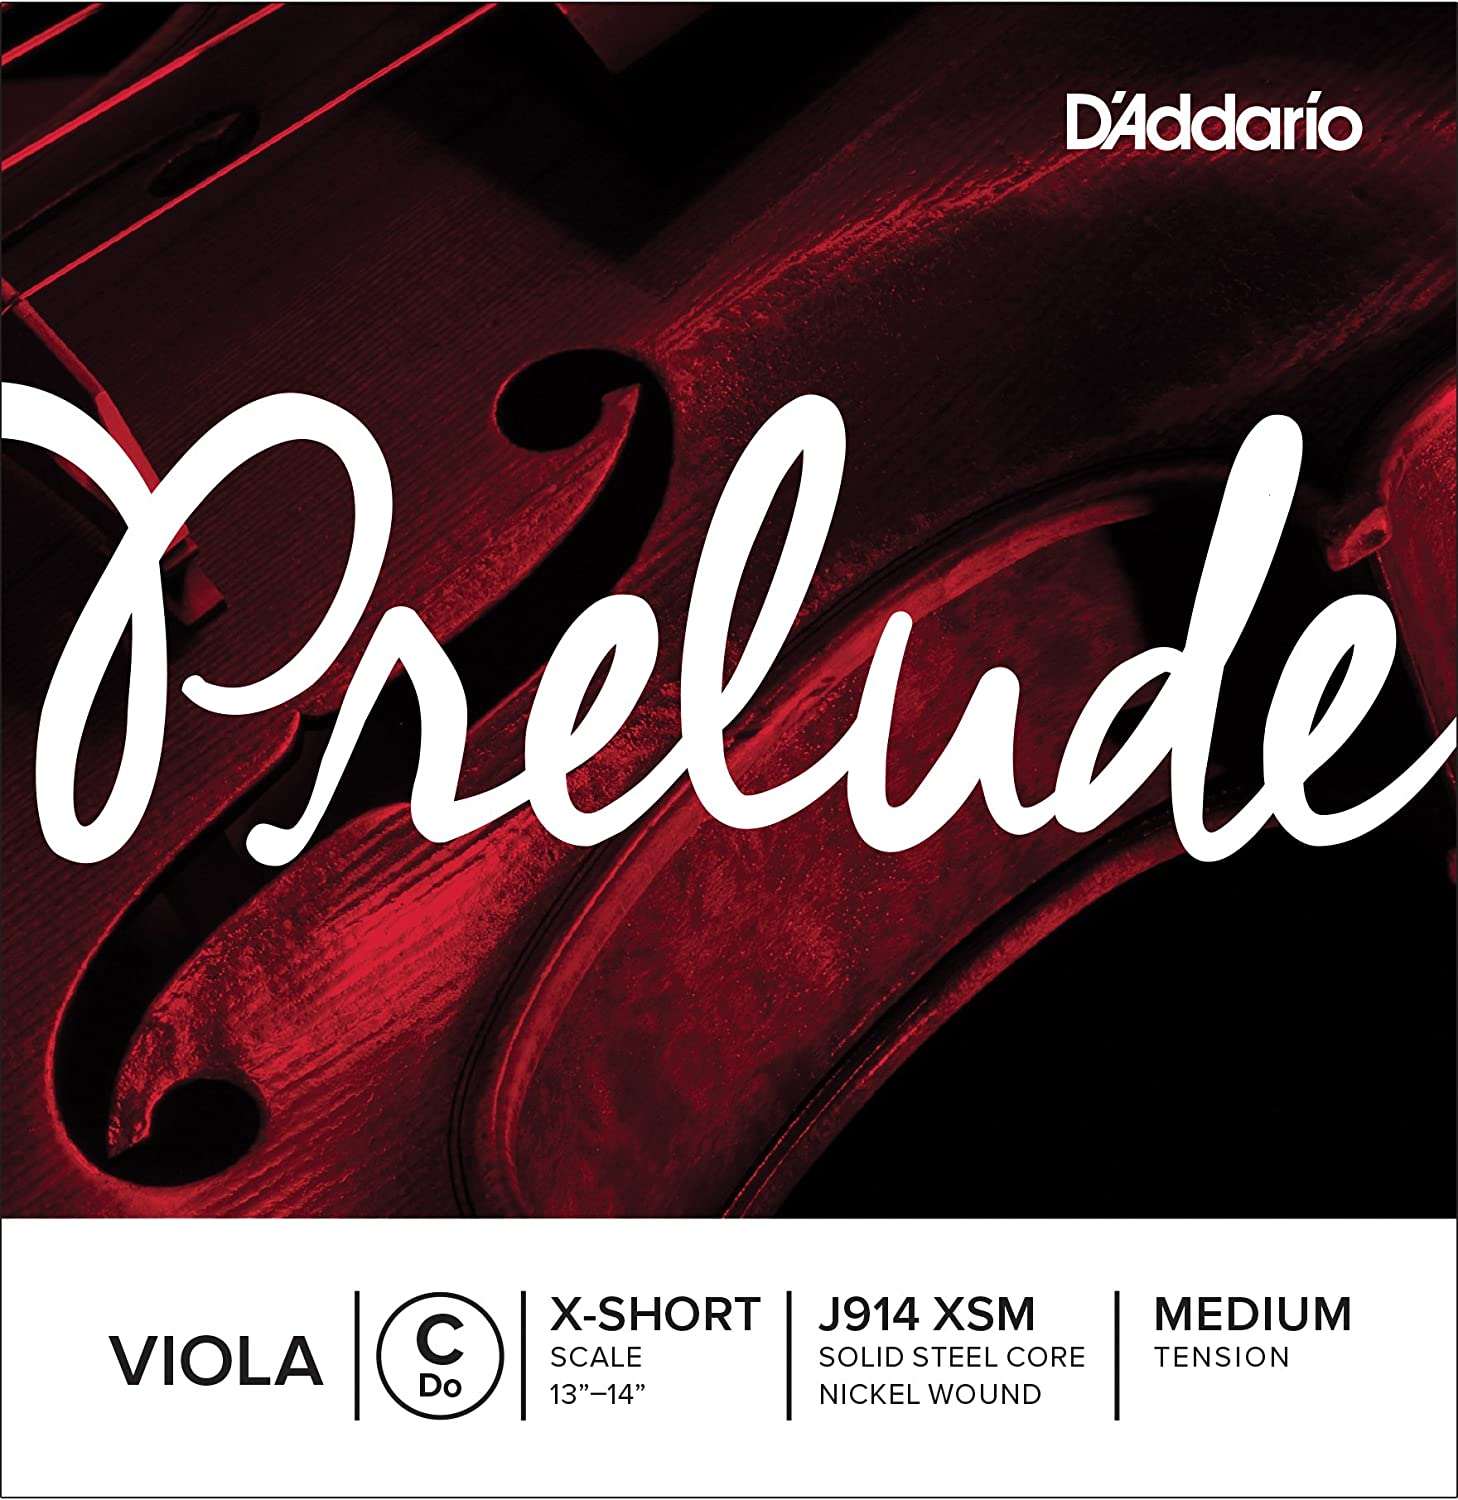 D'Addario Prelude Viola Single C String, Short Scale, Medium Tension D'Addario &Co. Inc J914 SM